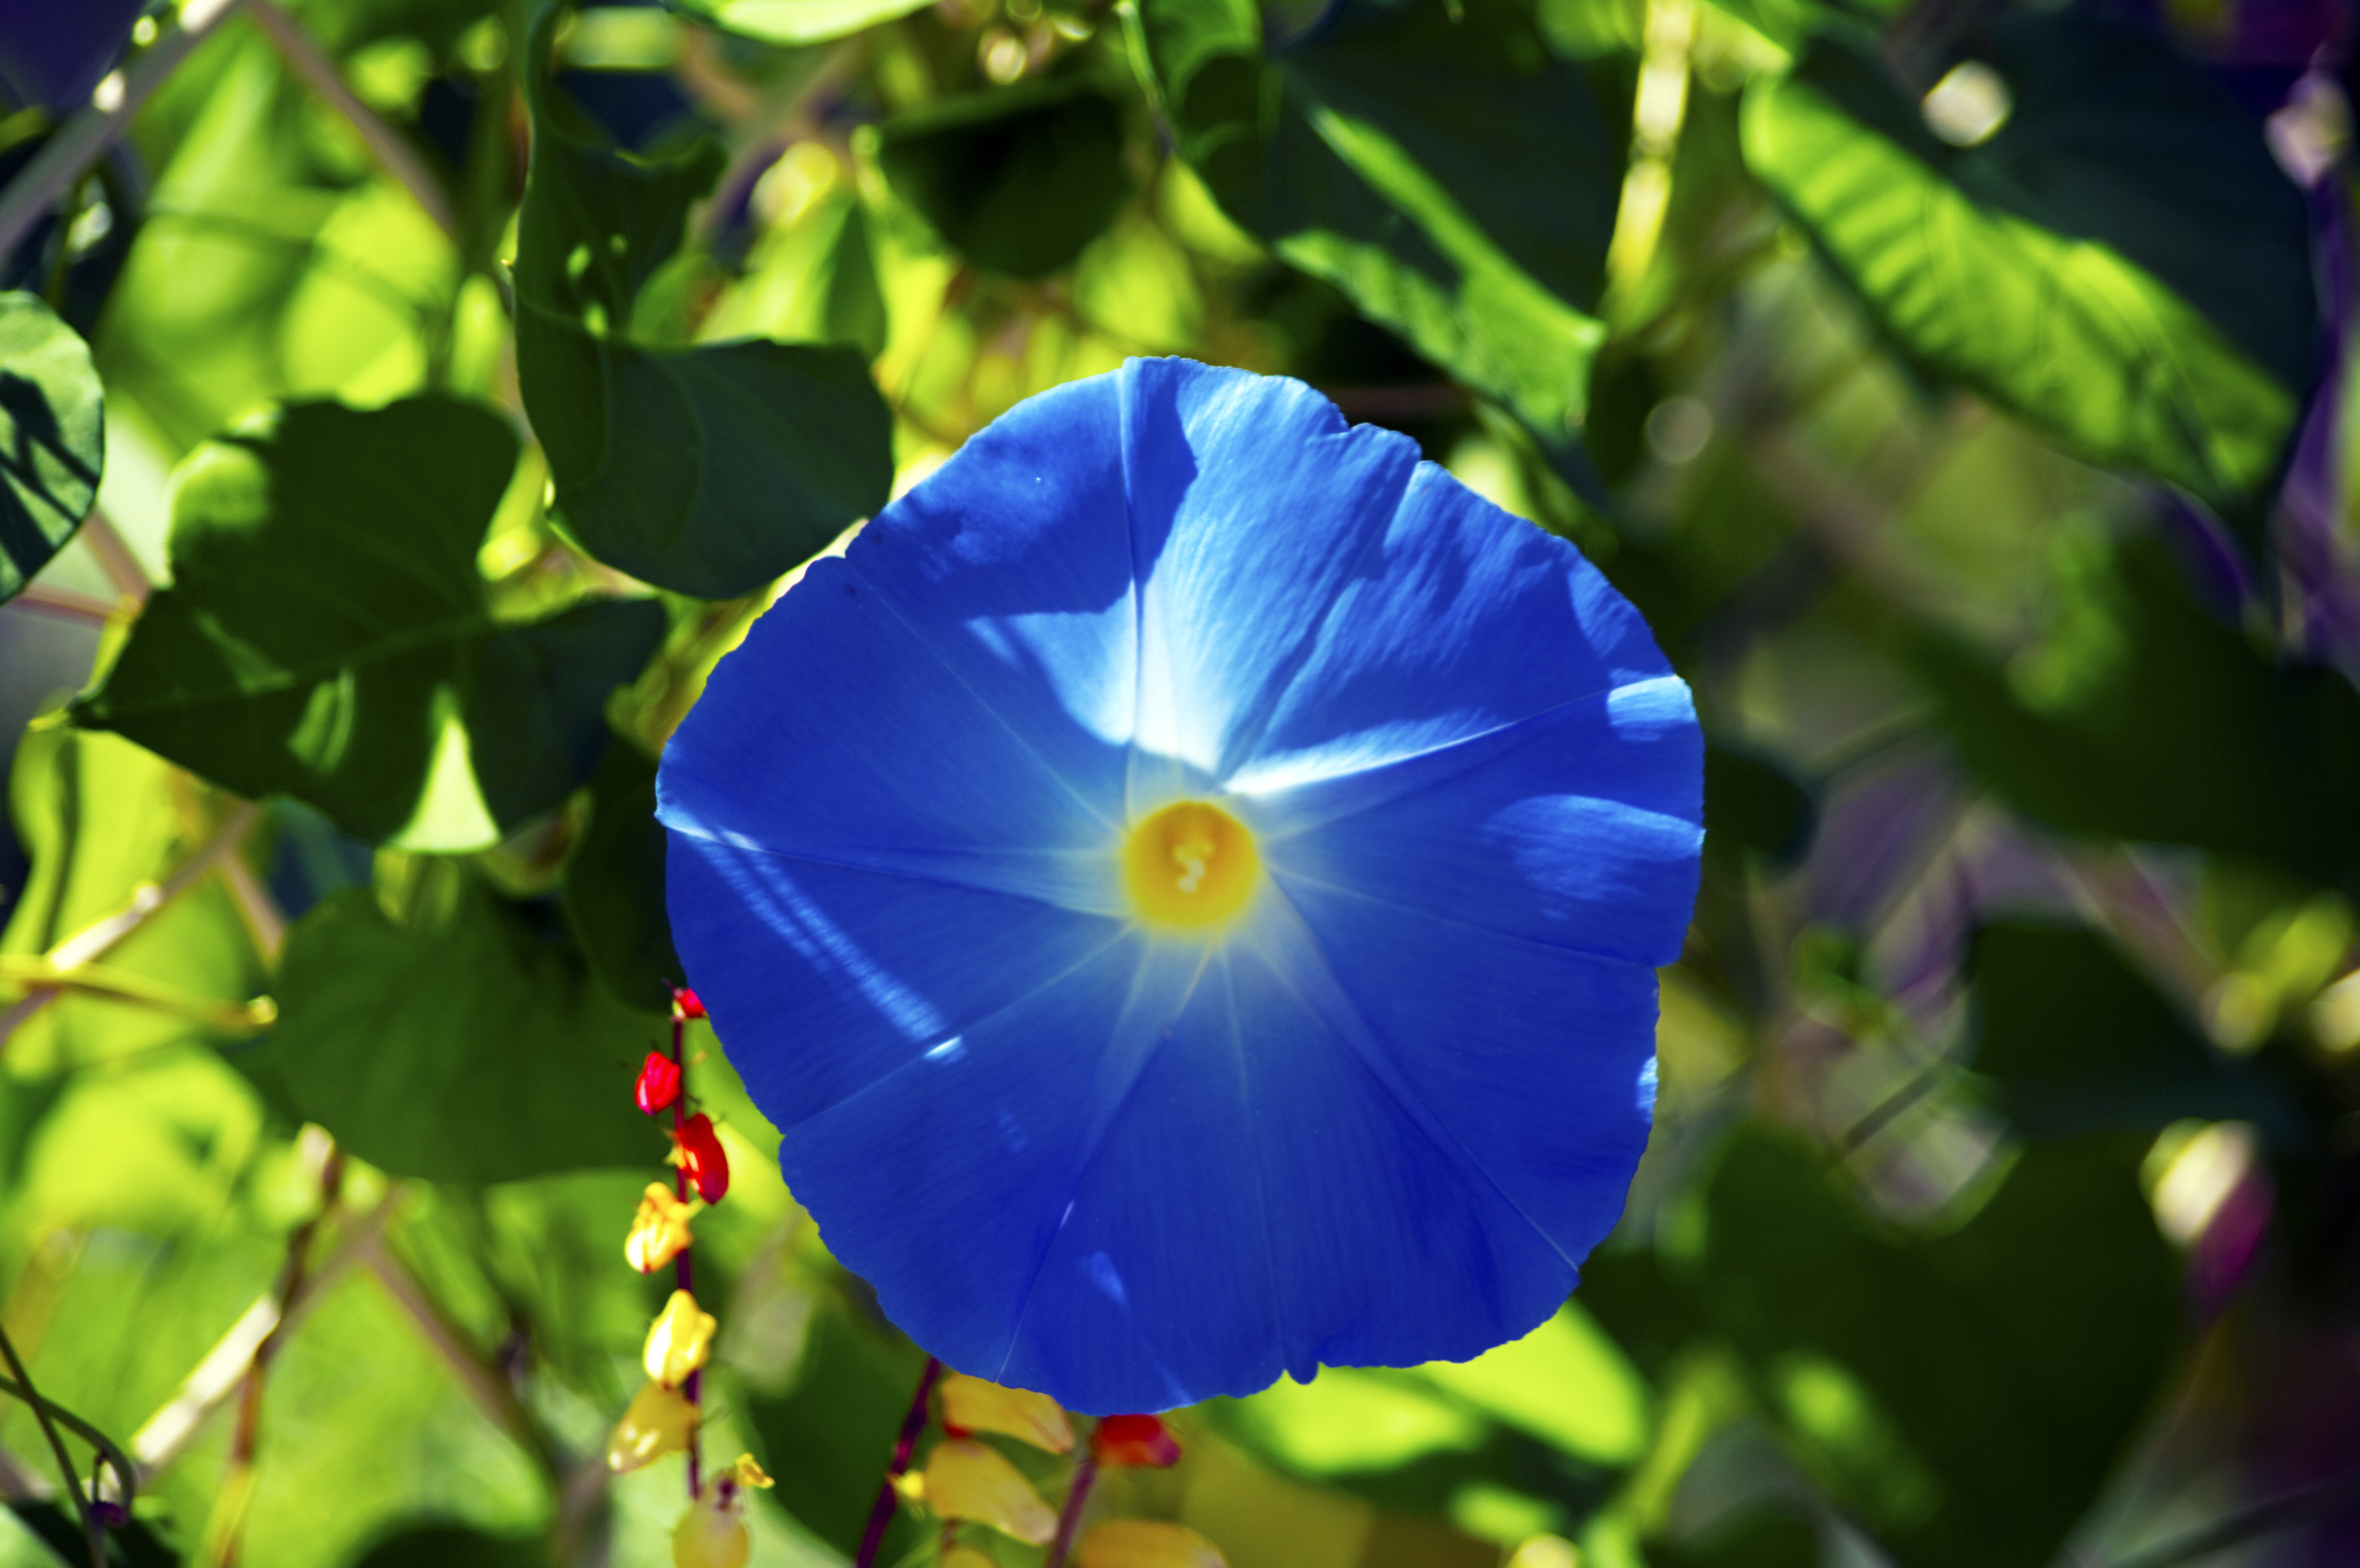 Pool Morning Glory Photo Is Copyrighted See Possible Useinformation Good Day Heavenly Blue Morning Glory A Bloom Photoindex Heavenly Blue Morning Glory Seeds Sale Heavenly Blue Morning Glory Seeds Dos houzz-03 Heavenly Blue Morning Glory